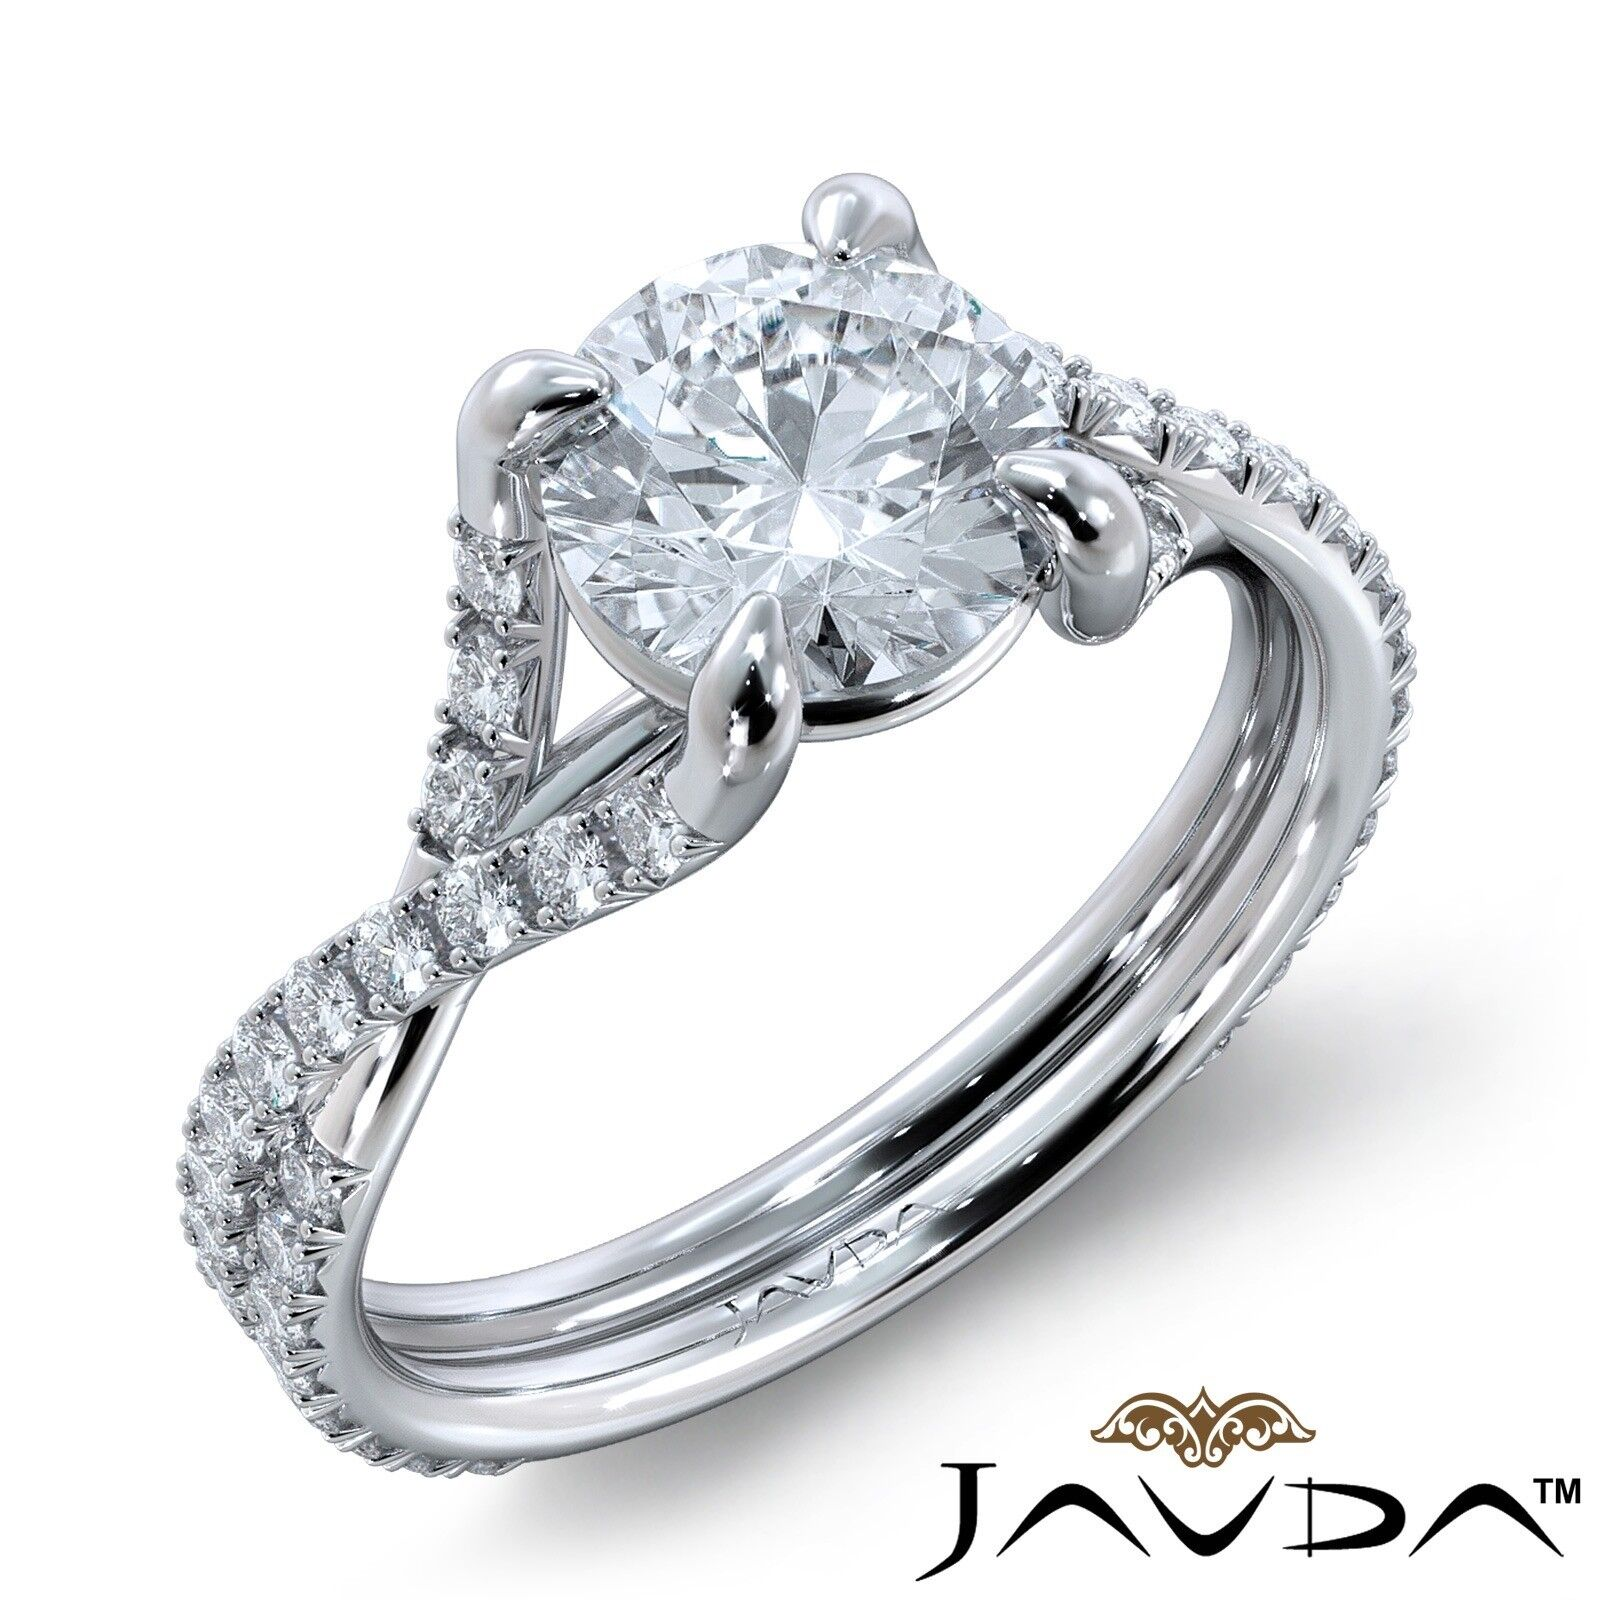 1.95ct French Cut Classic Sidestone Round Diamond Engagement Ring GIA G-VS2 Gold